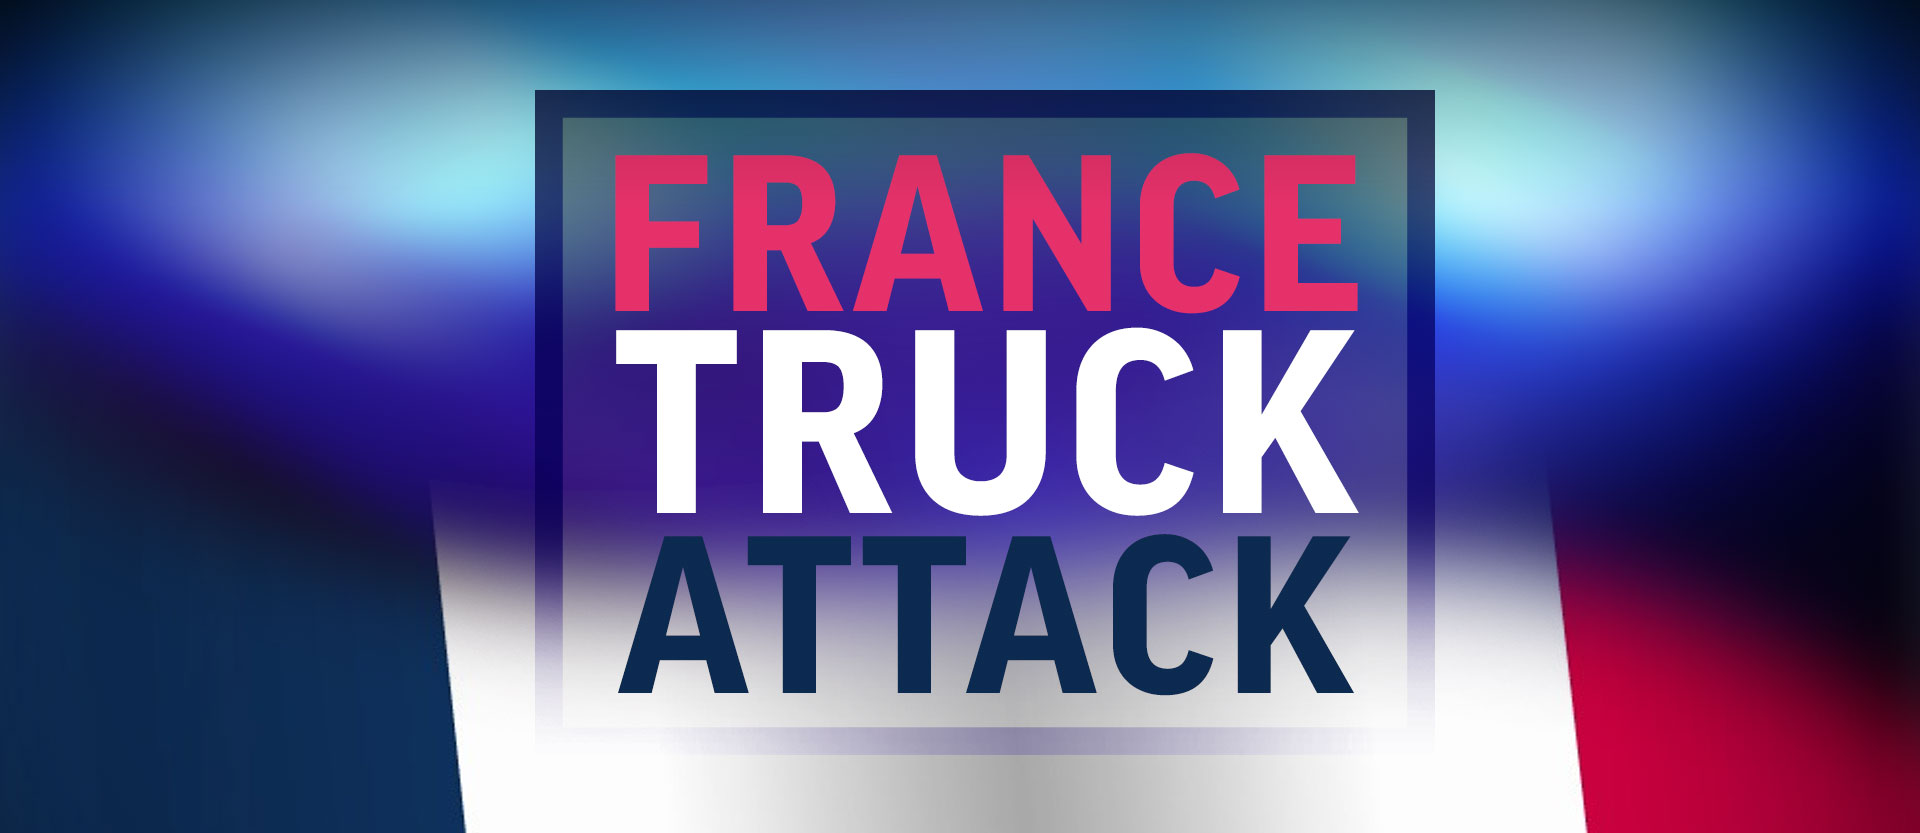 Islamic state says its soldier behind nice truck attack